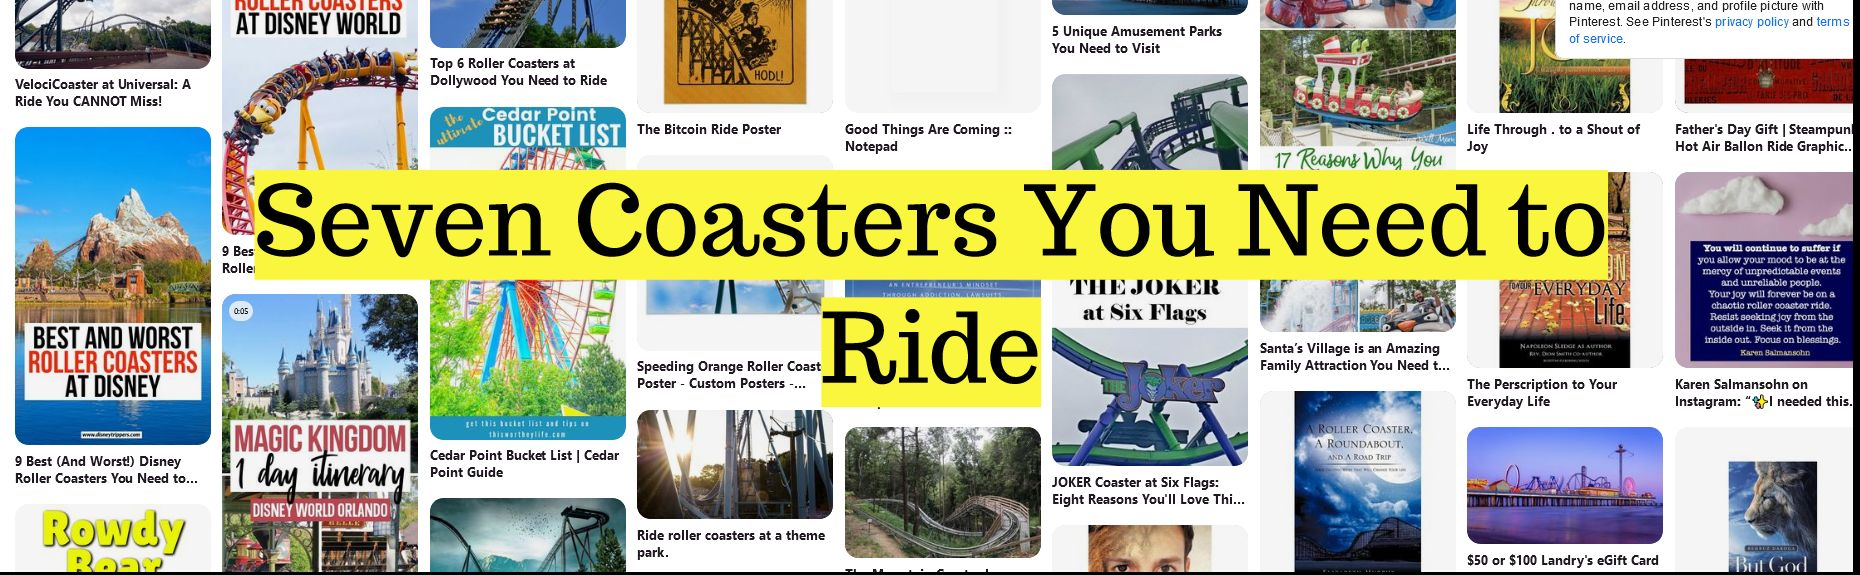 Seven Coasters You Need to Ride